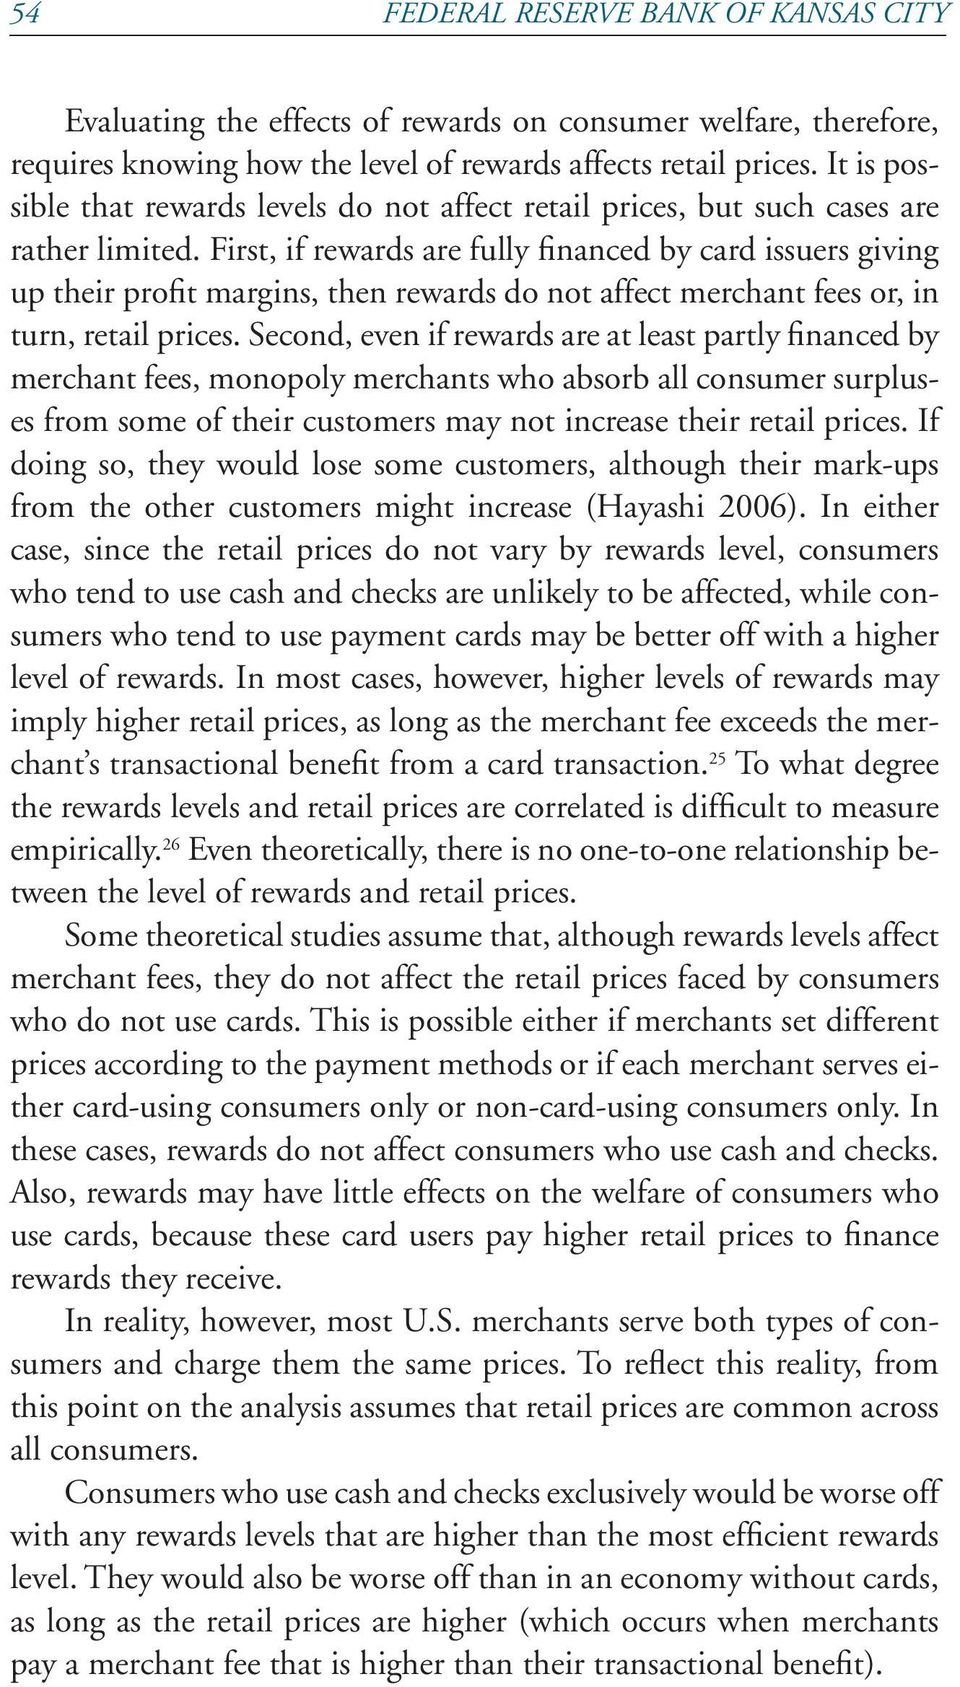 First, if rewards are fully financed by card issuers giving up their profit margins, then rewards do not affect merchant fees or, in turn, retail prices.